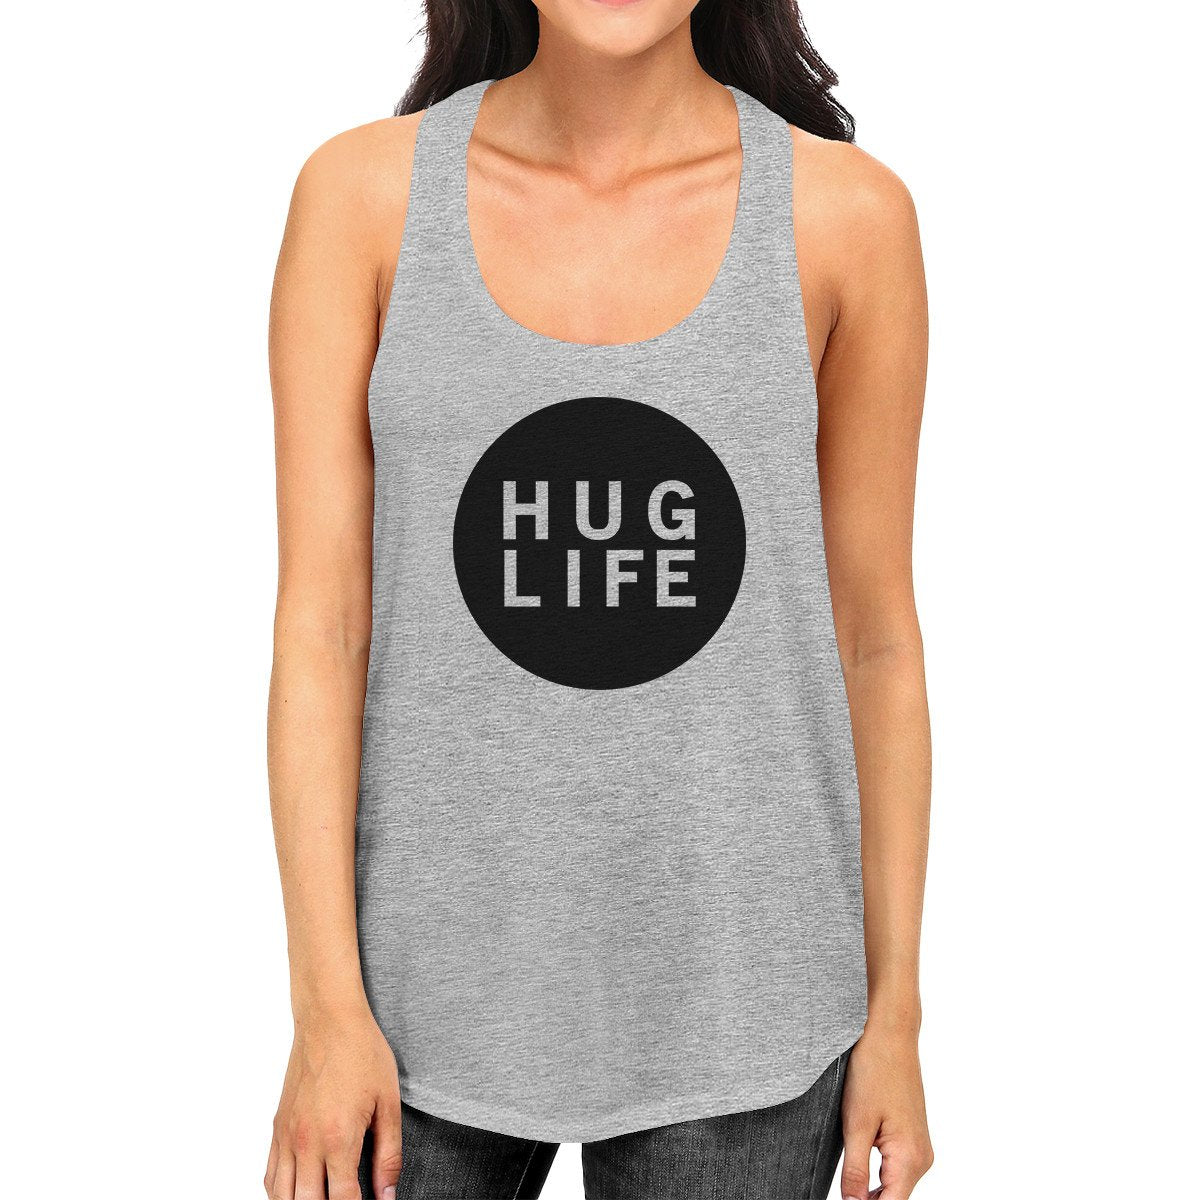 Hug Life Womens Gray Sleeveless Tank Life Quote Gift Ideas For Her - Slangz TeeZ